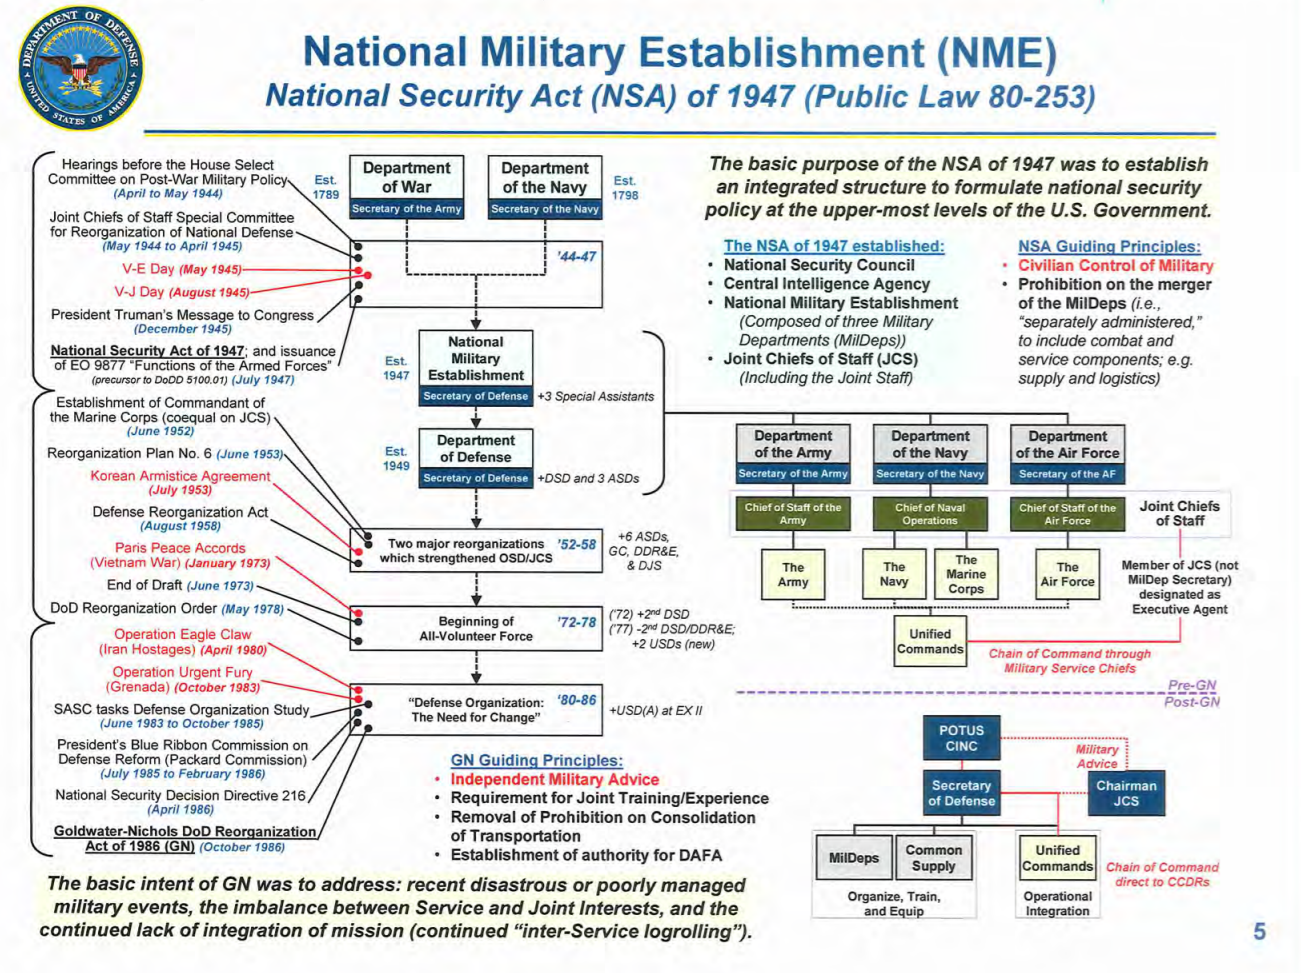 Organization of the NME as of 1947